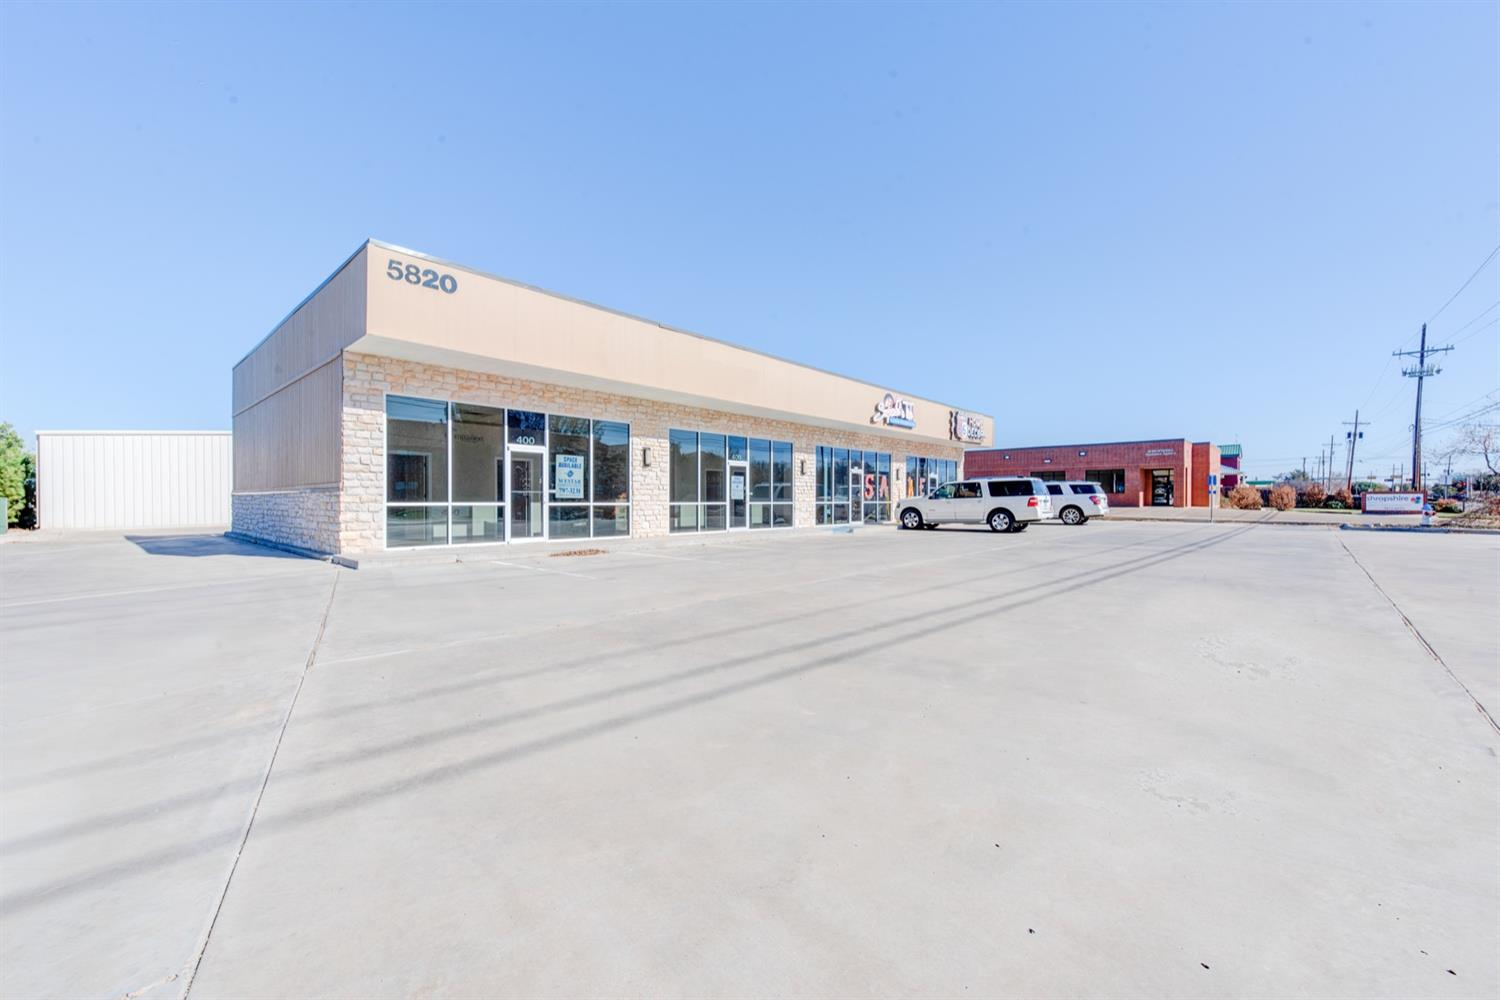 Take advantage of this 3,600 SF Retail Center off Frankford Ave & 66th Street. This 2014 built space has served retail sales & medical (veterinary clinic) sales. The hard corner of 66th St & Genoa Ave offers access to Rear Parking and Front Parking (26 spaces). Ideal for Medical Owner Operator or Small Retail Investor. Contact Listing Agent for Details.